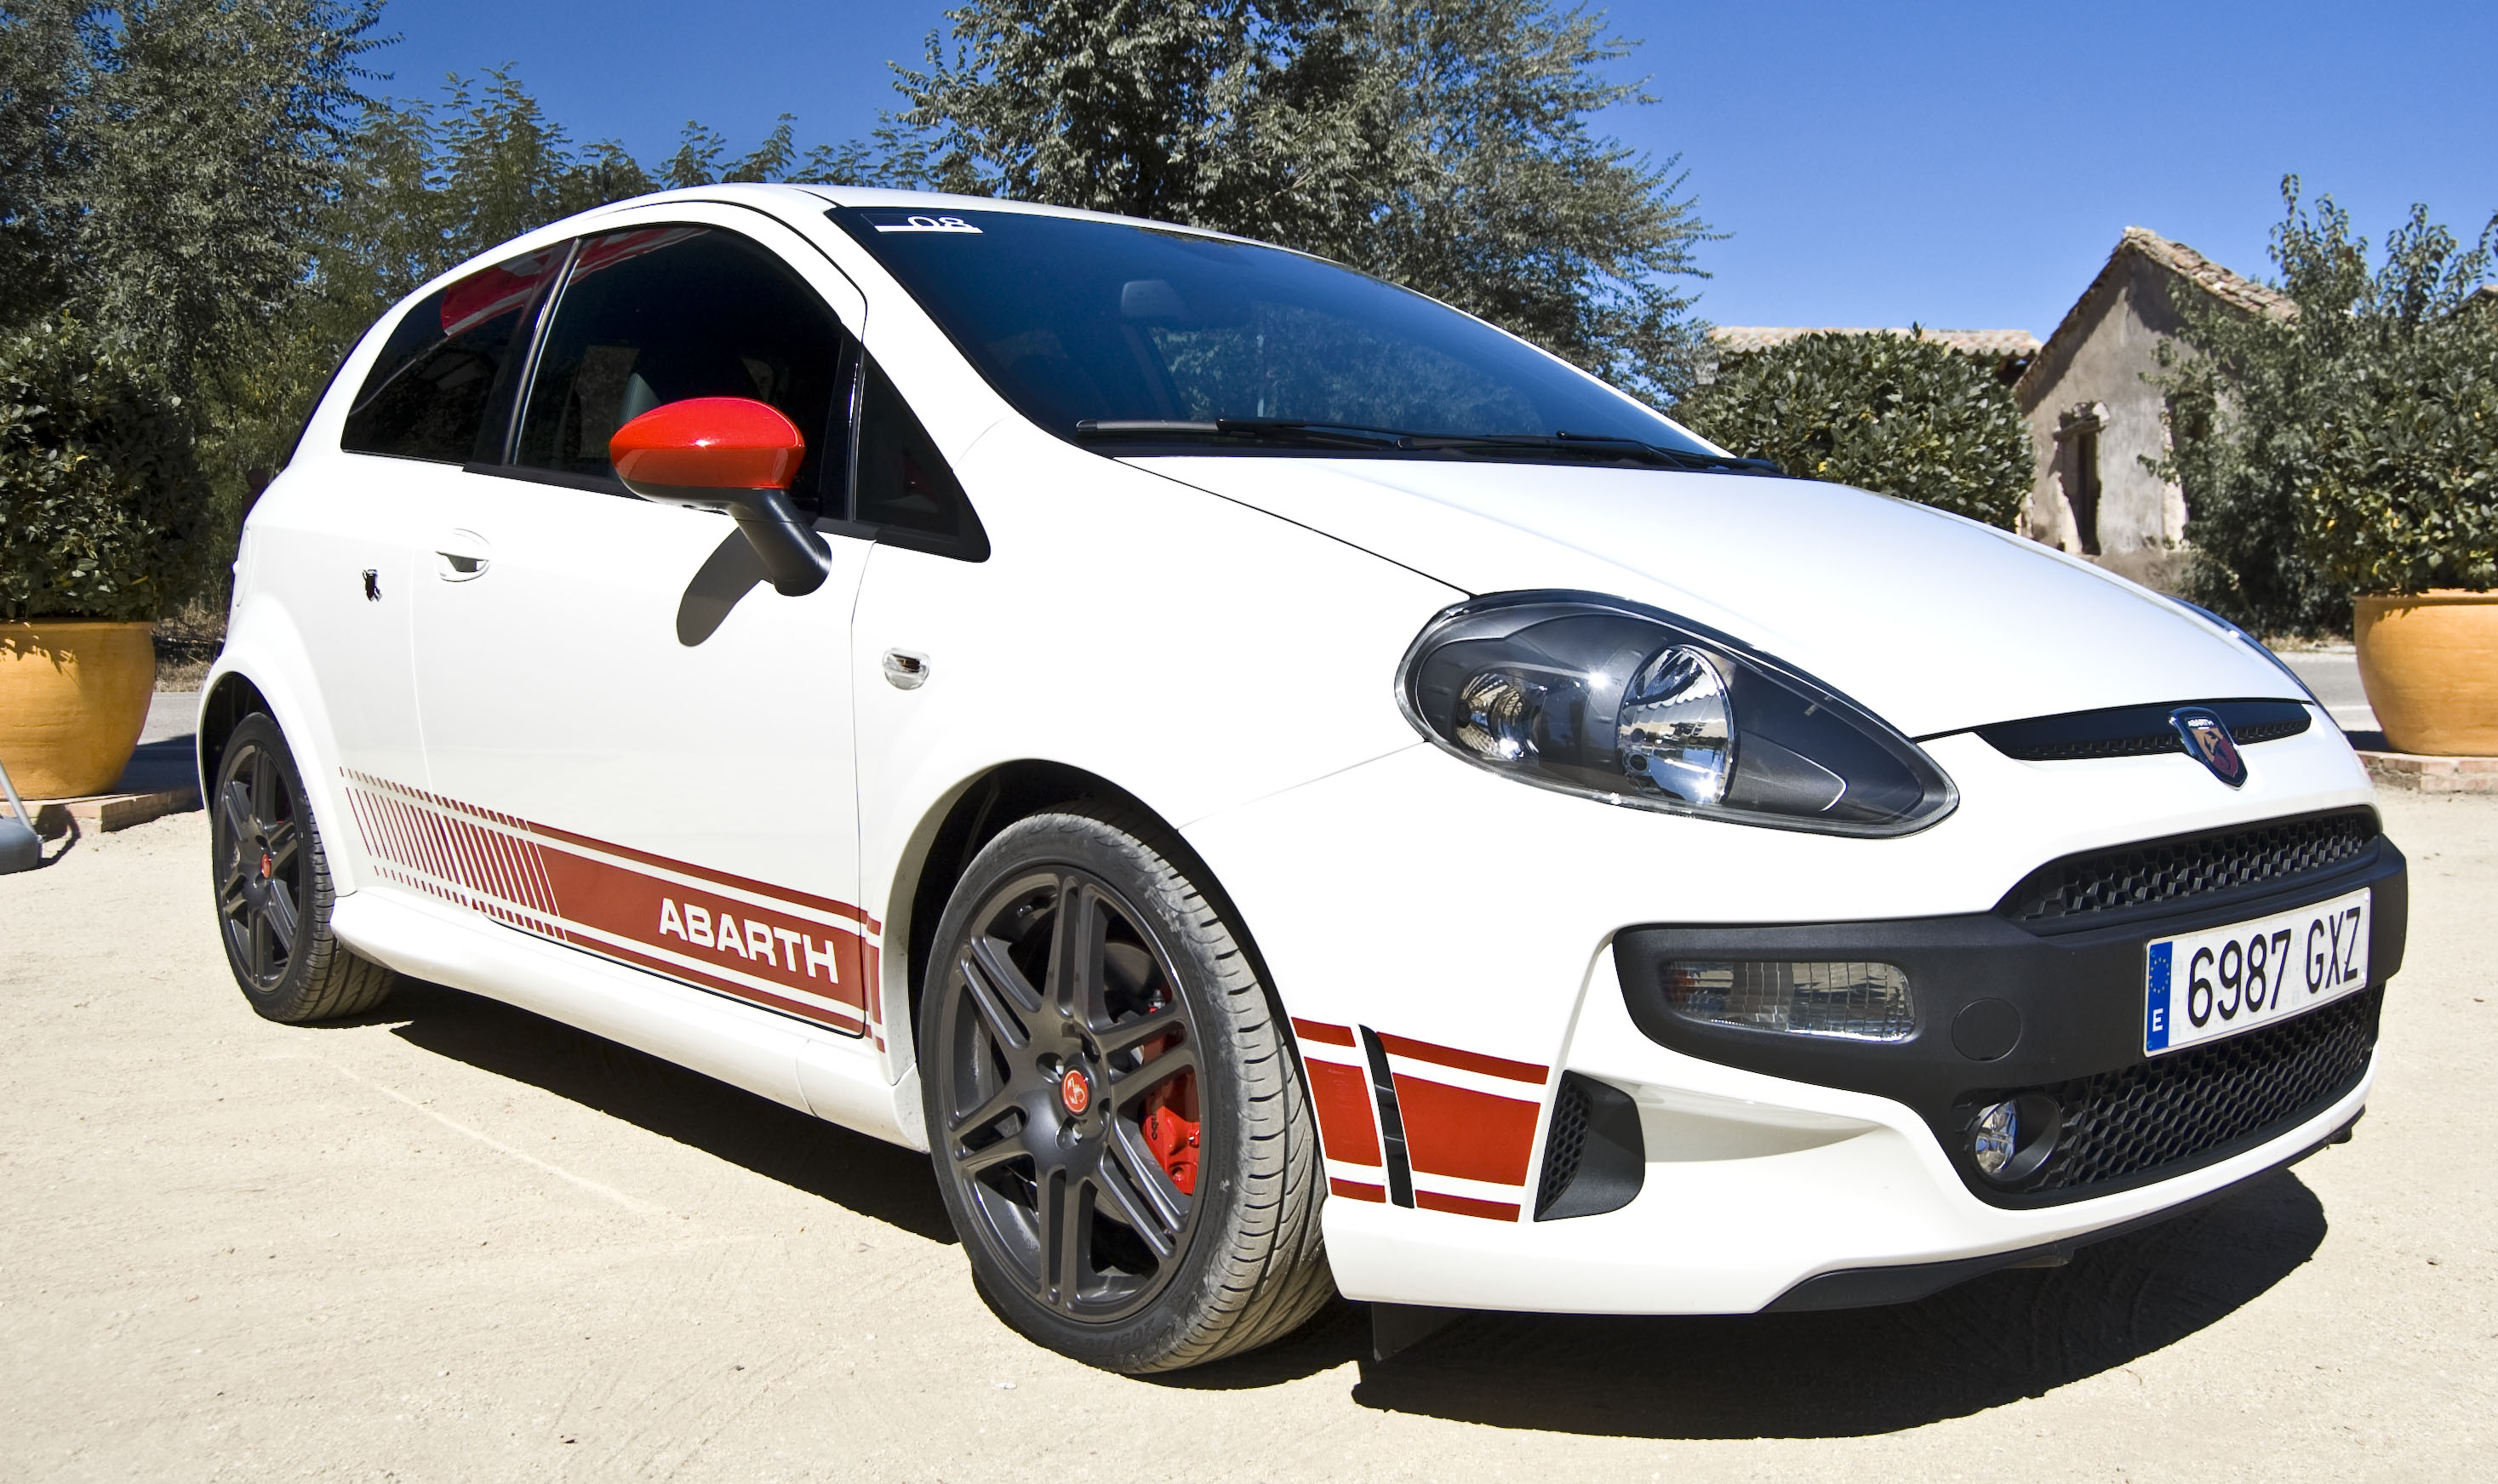 Abarth Punto Evo White File:abarth Punto Evo Flickr